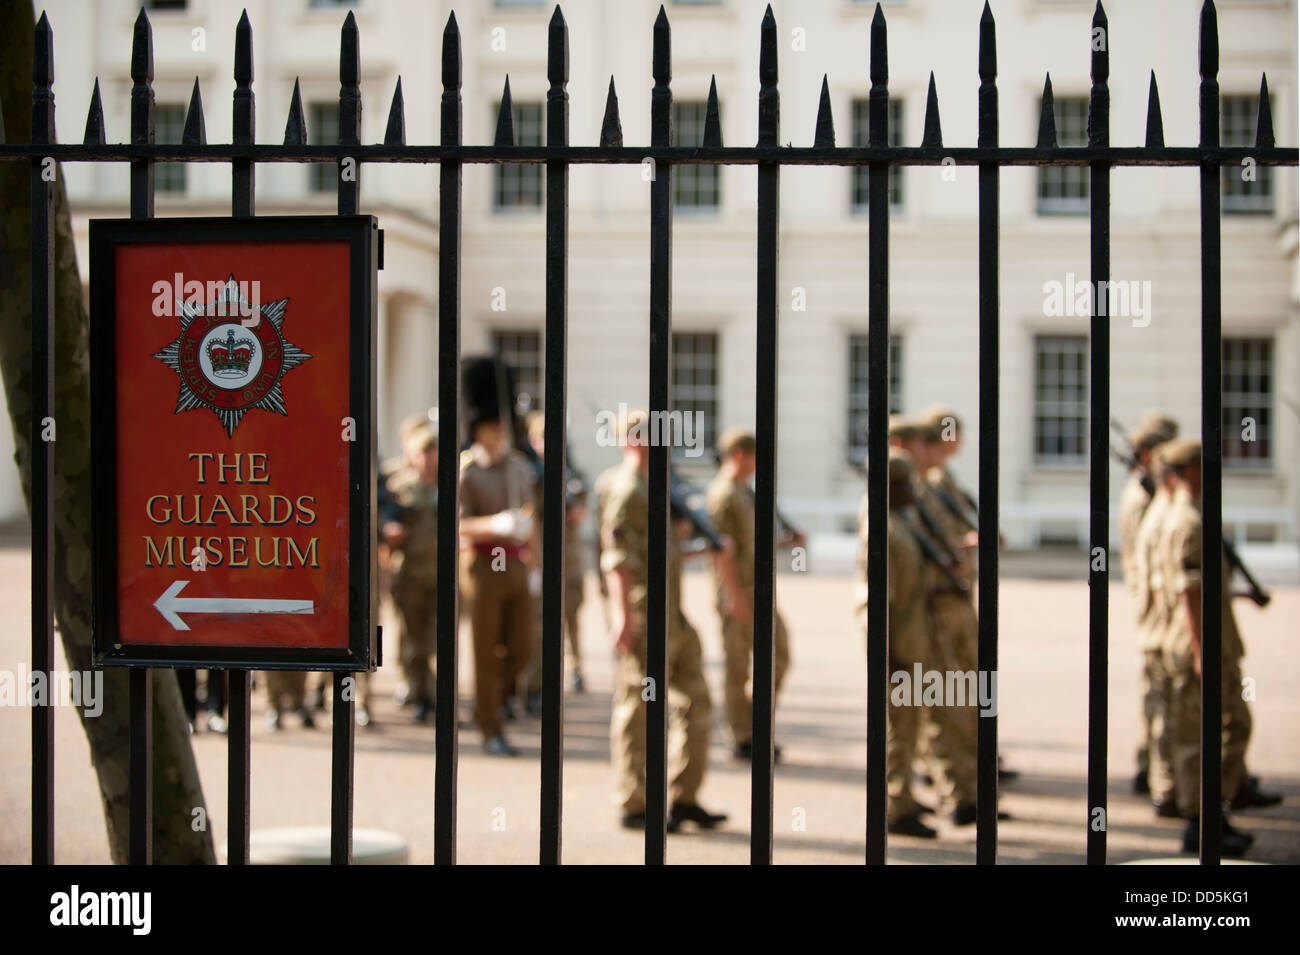 Guardsmen Square Bashing at Wellington Barracks in central London with sign to the Guards Museum - Stock Image